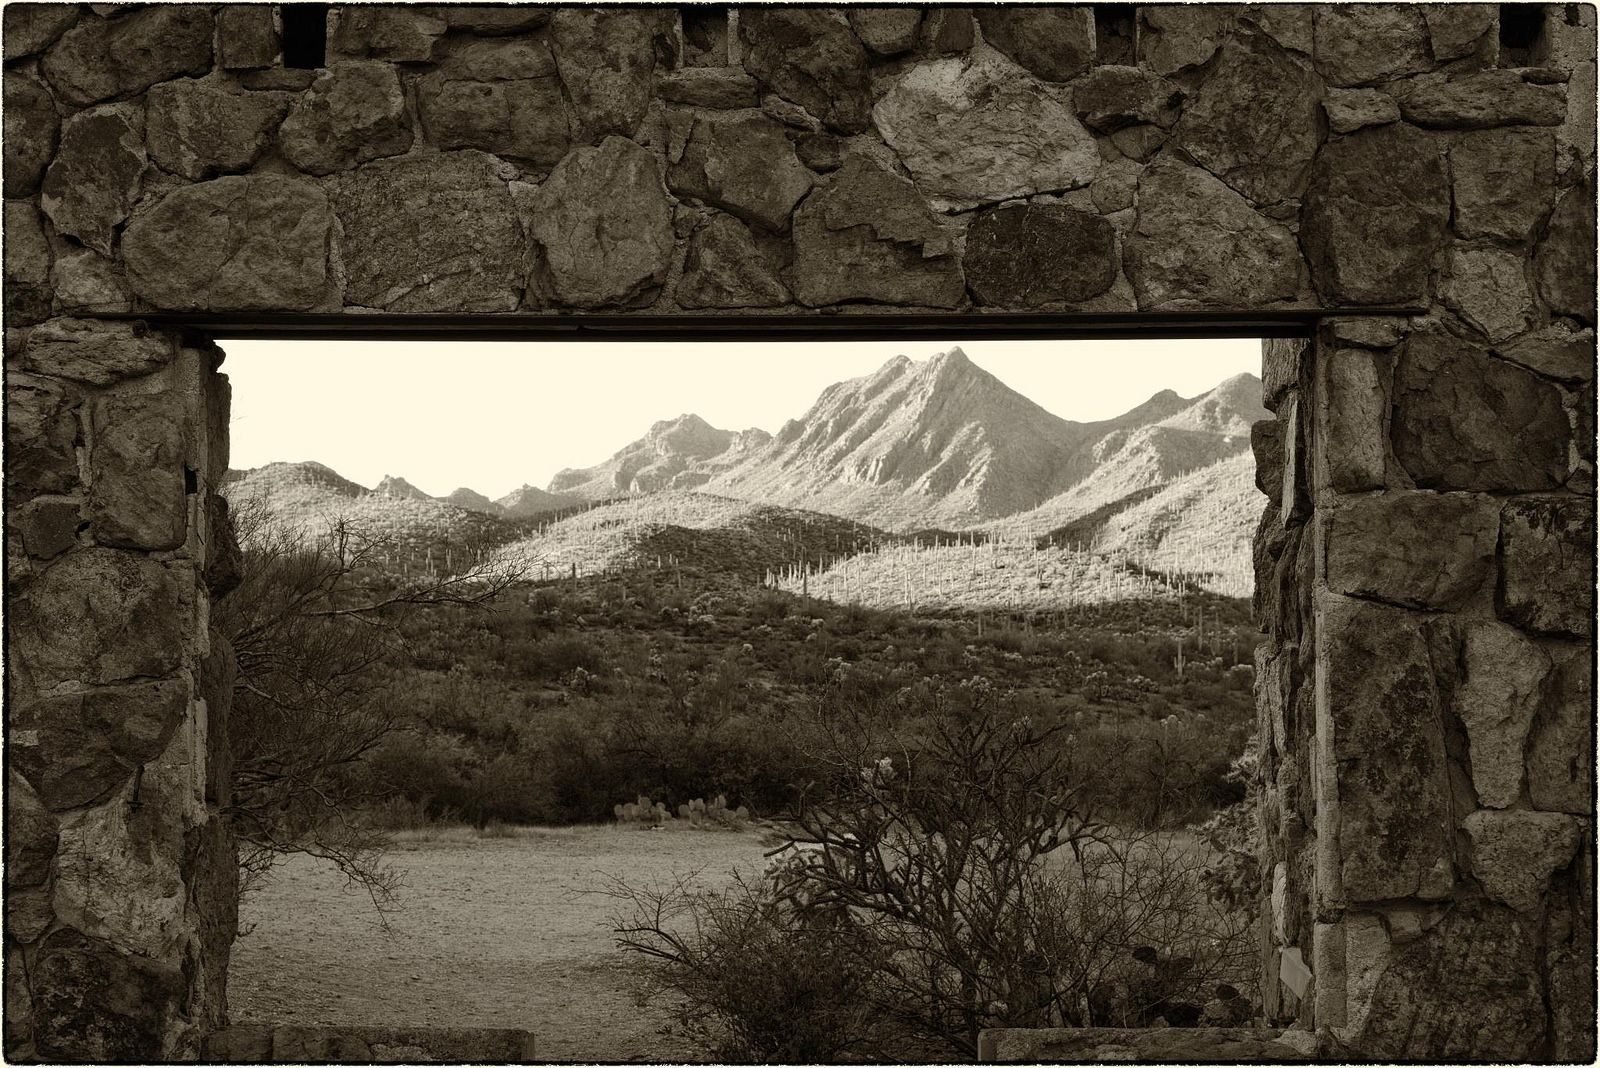 House on the rock flickr photo sharing - View From The Bowen Stone House Tucson Az Flickr Photo Sharing